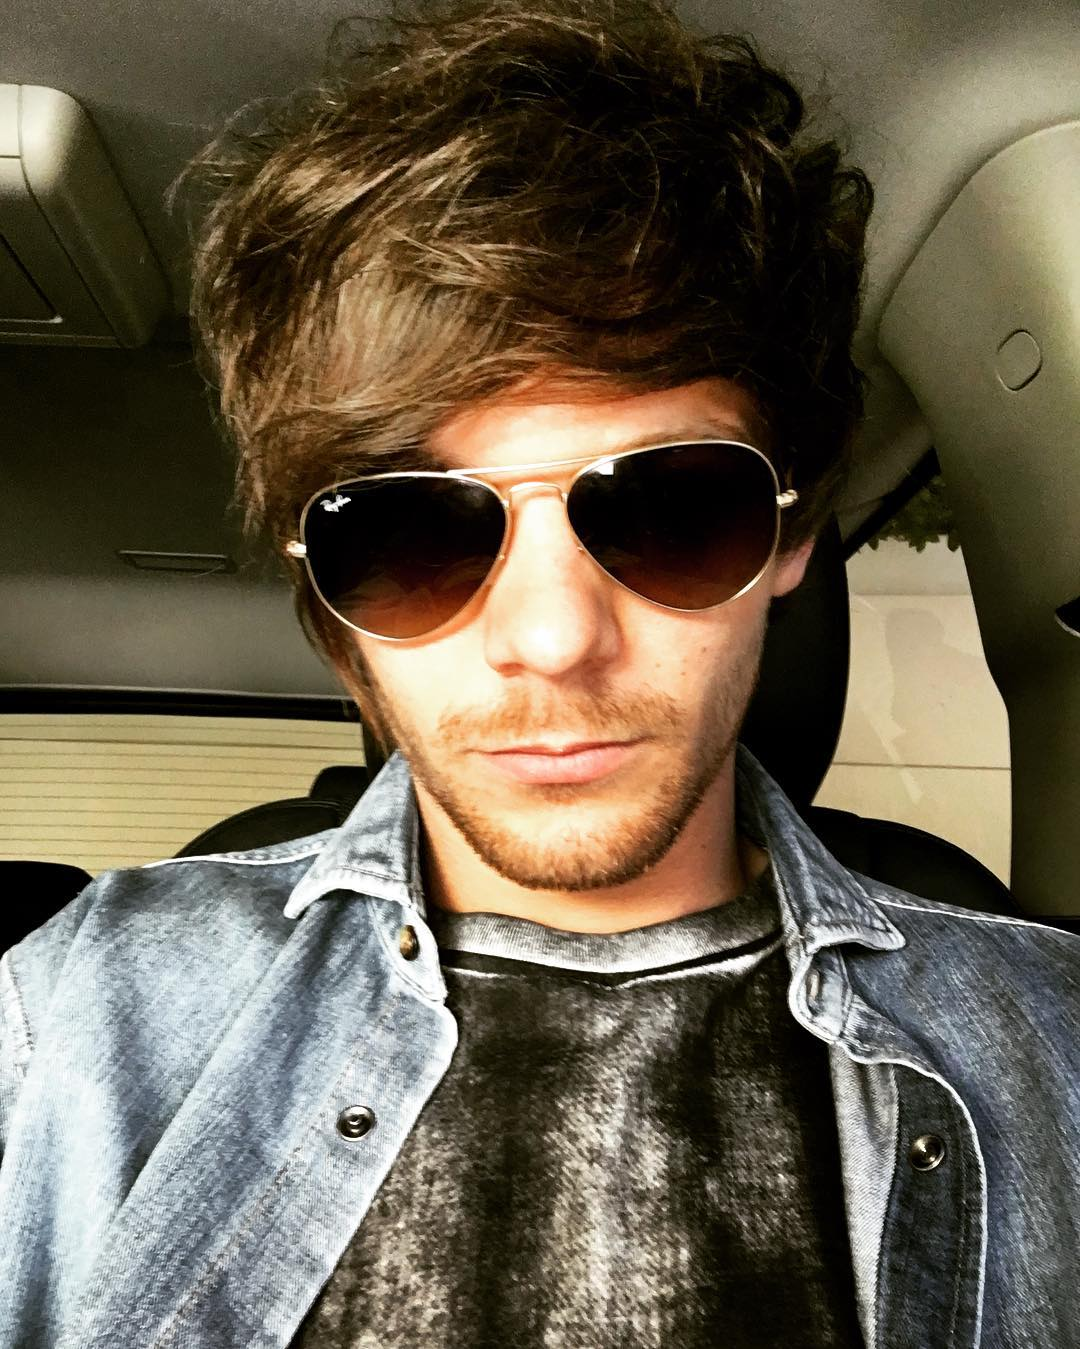 louist91_12751302_906792589418863_675298842_n - Copy.jpg